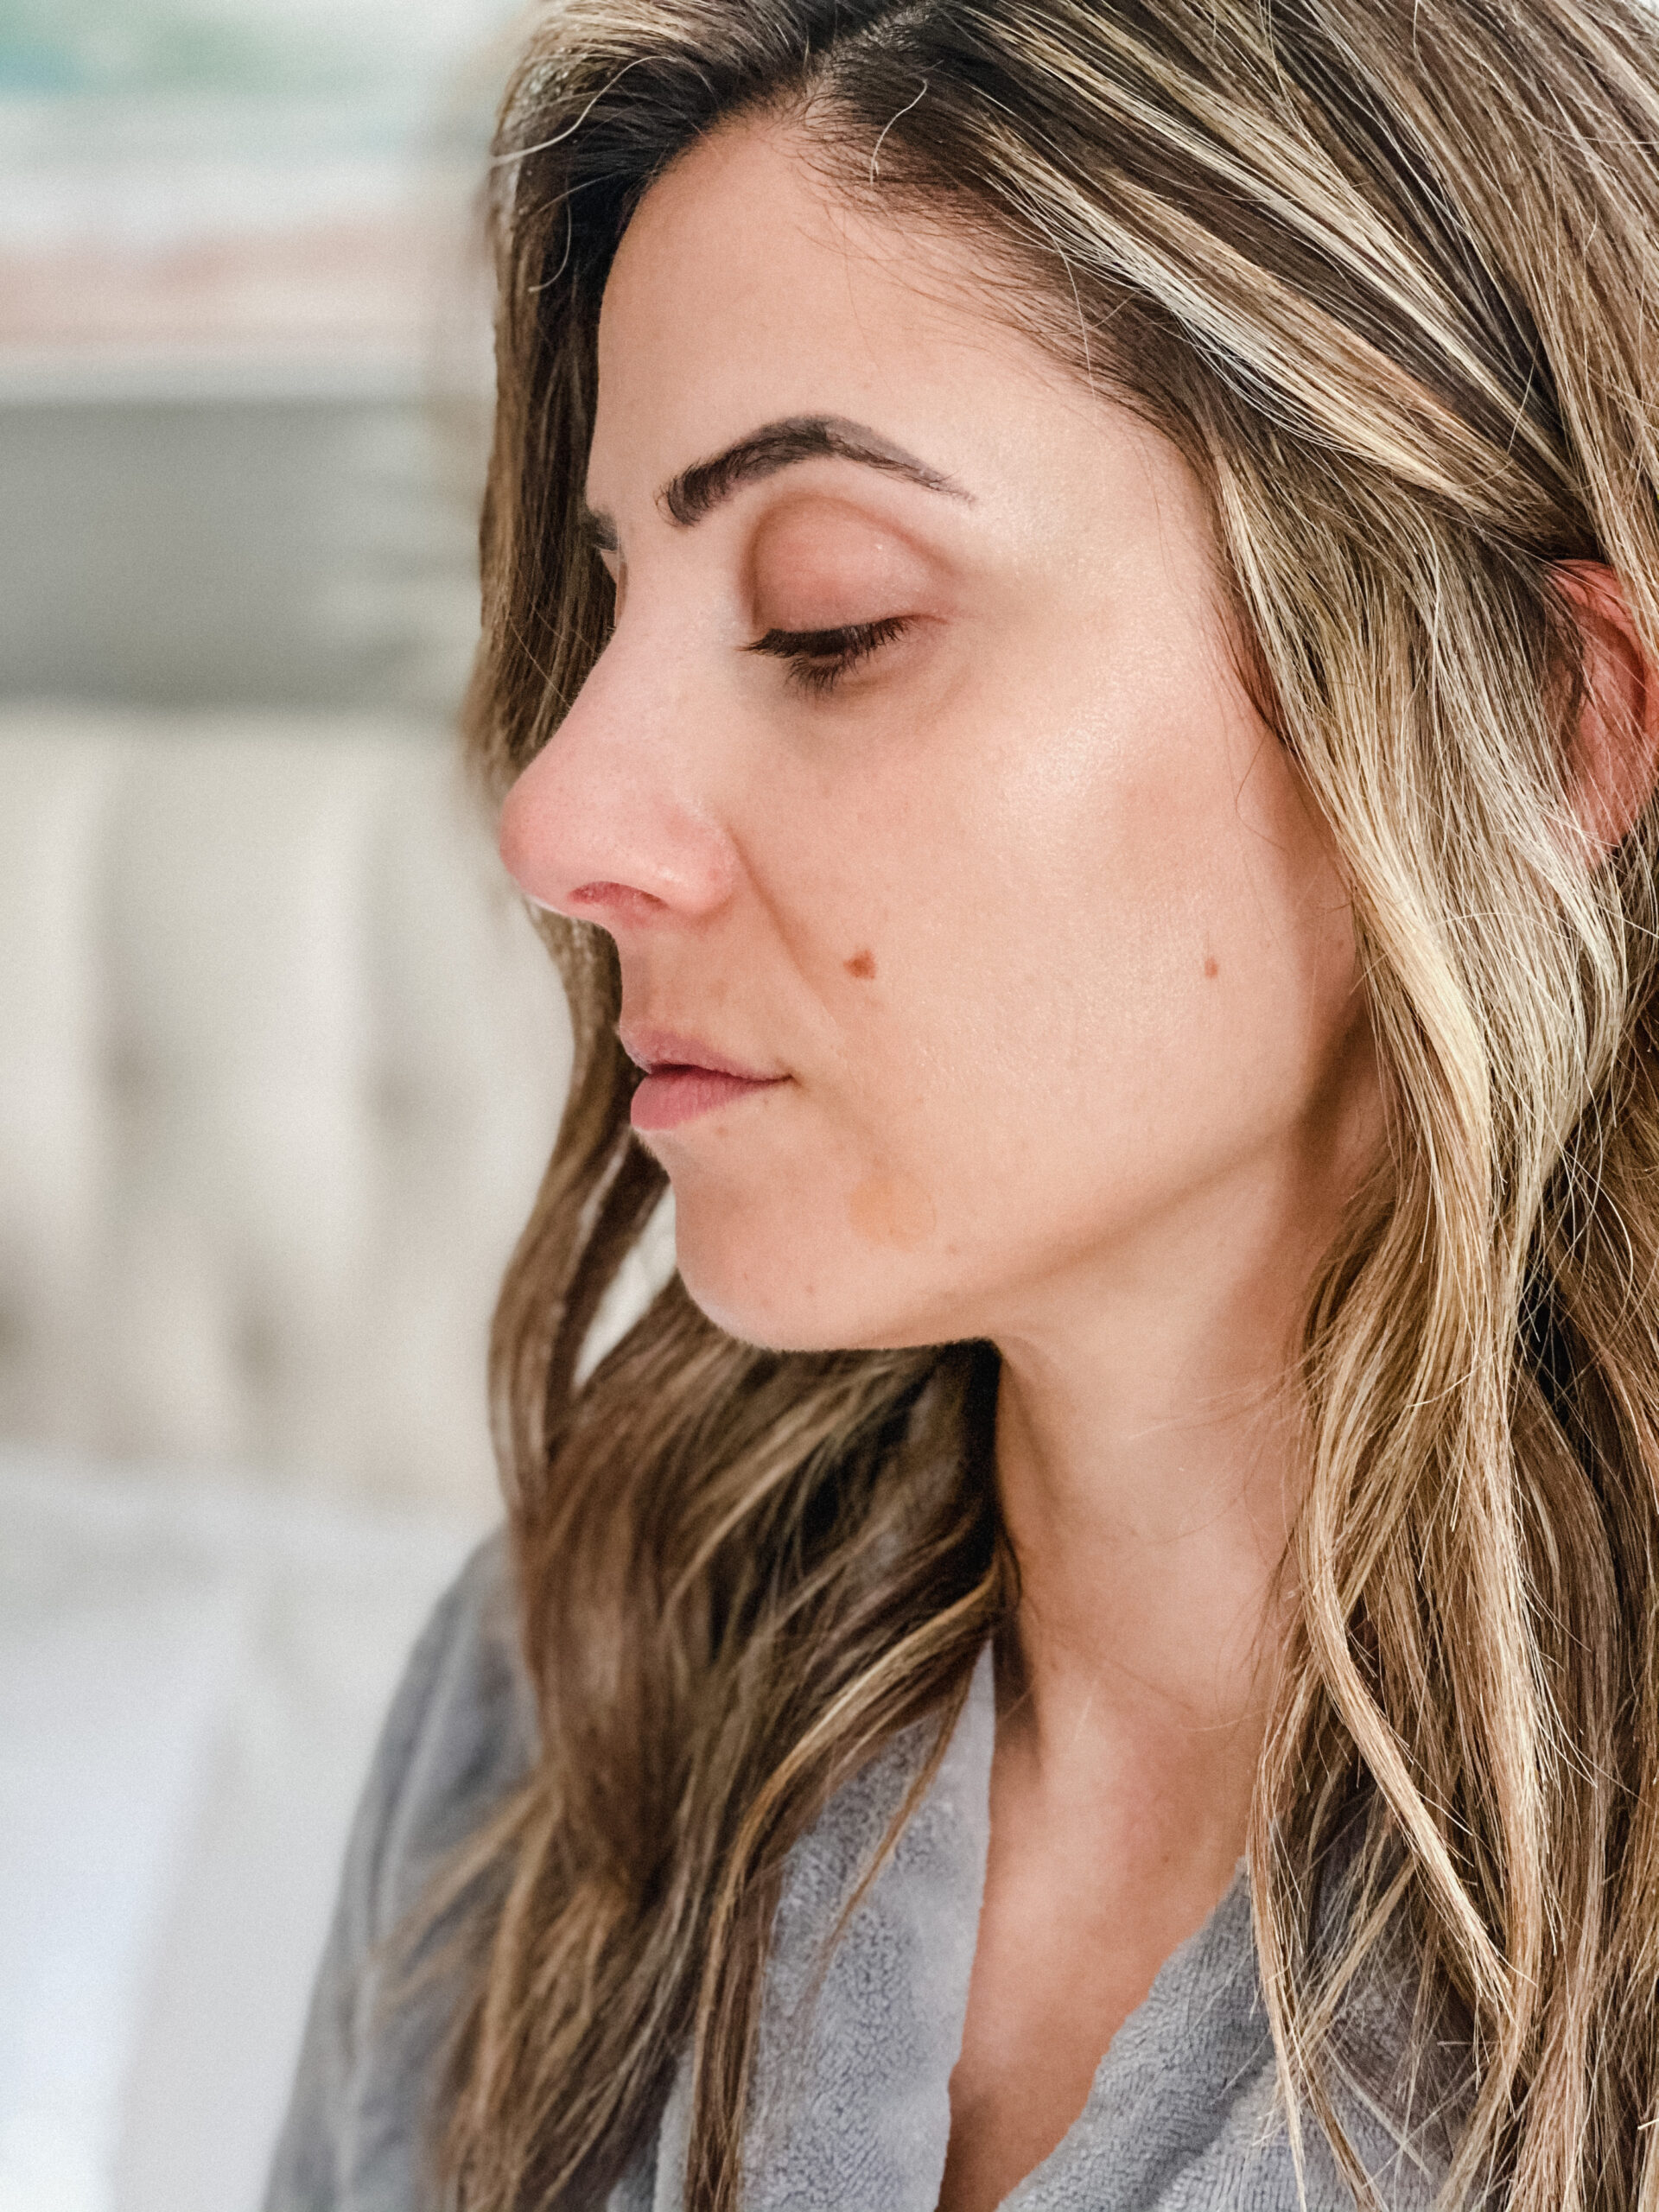 Connecticut life and style blogger Lauren McBride shares her secret to treating breakouts quickly and effectively.